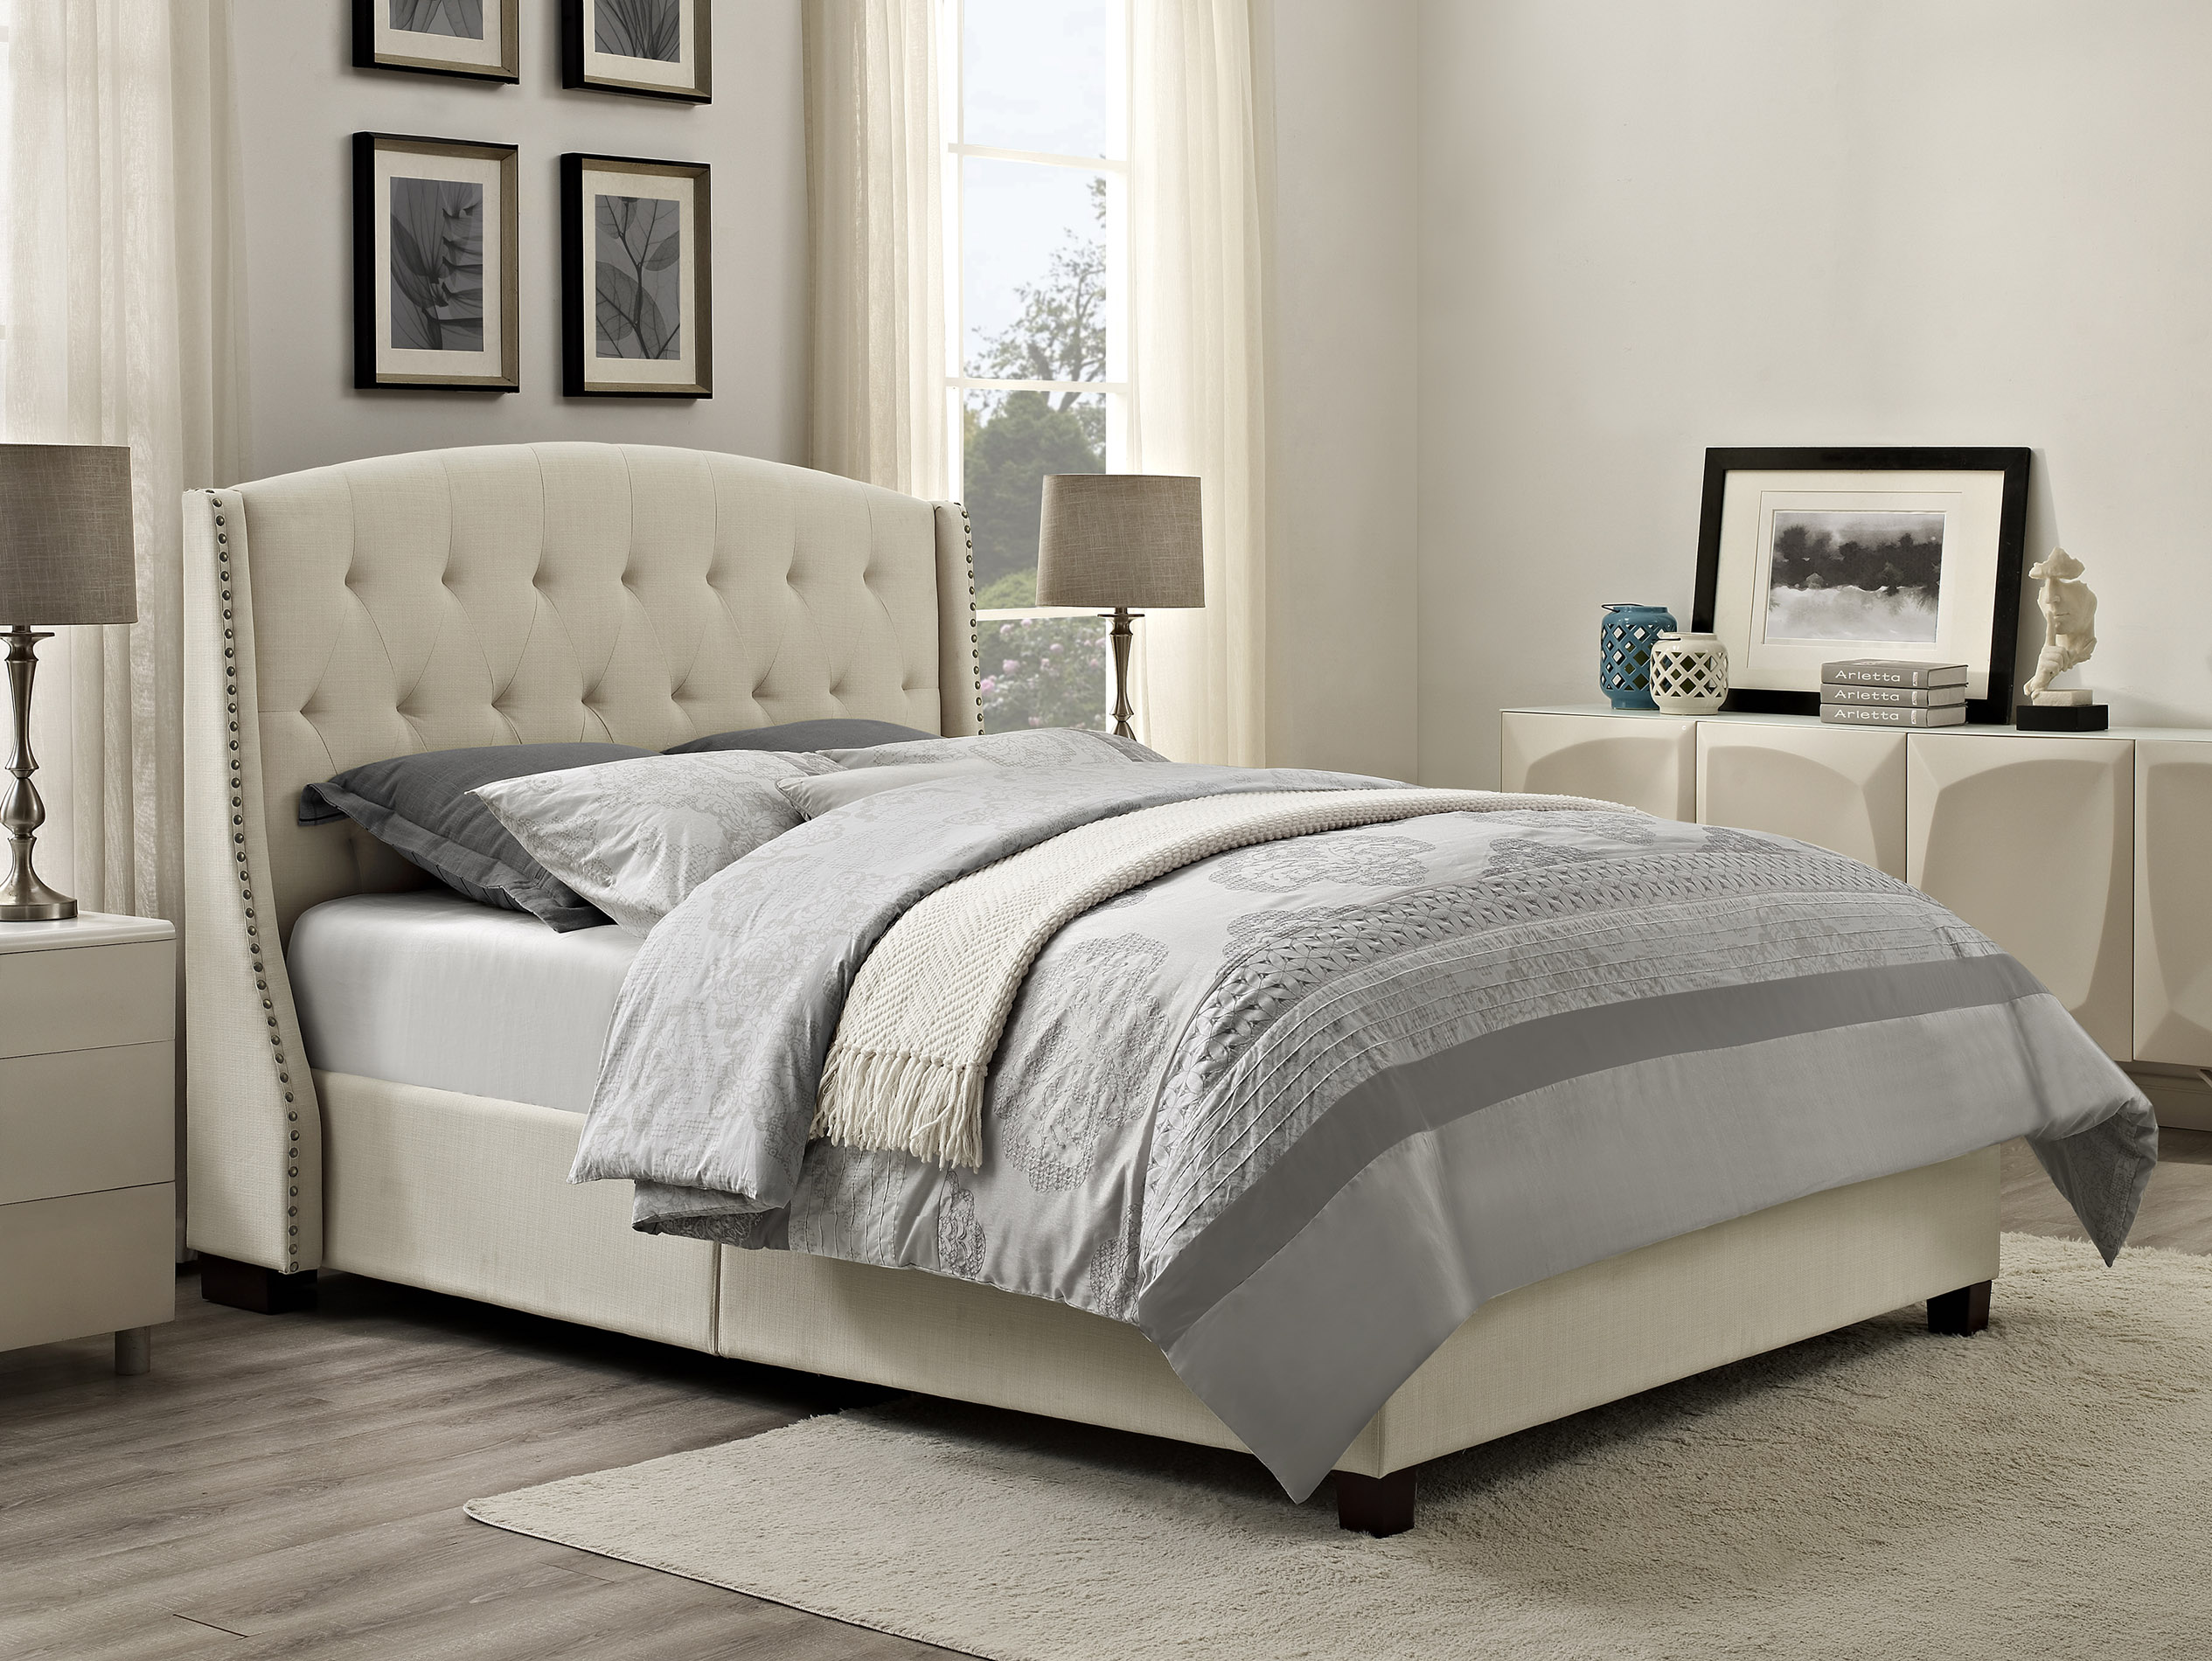 queen size bed dorel olivia upholstered bed multiple colors and sizes NZUAVDQ